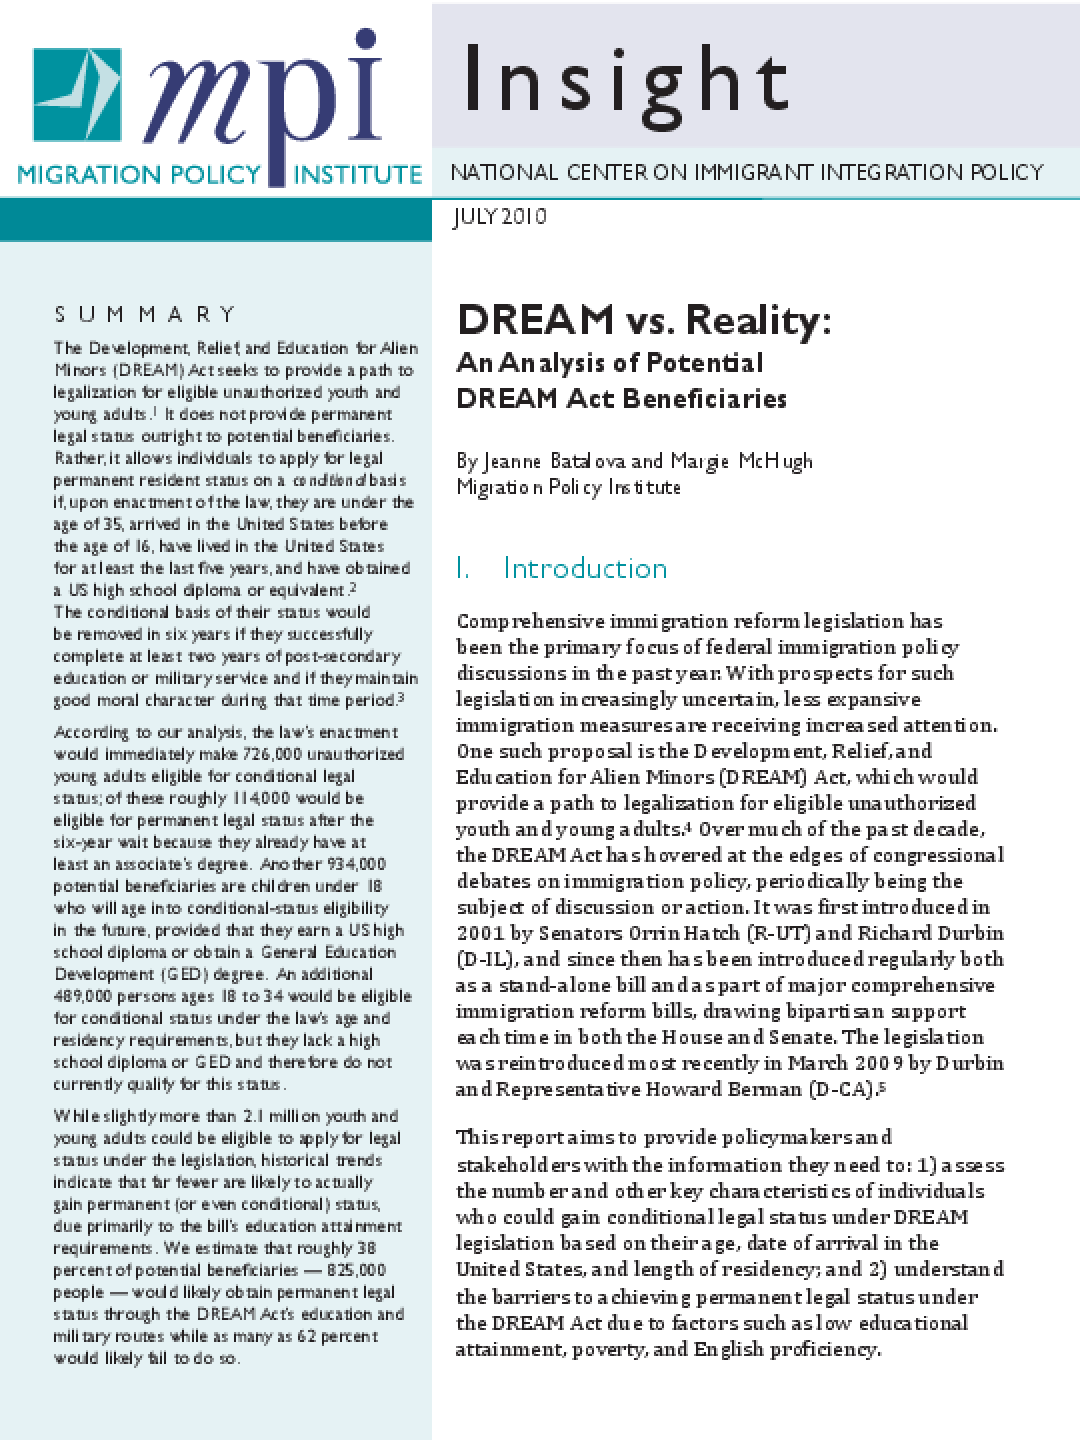 DREAM vs. Reality: An Analysis of Potential DREAM Act Beneficiaries